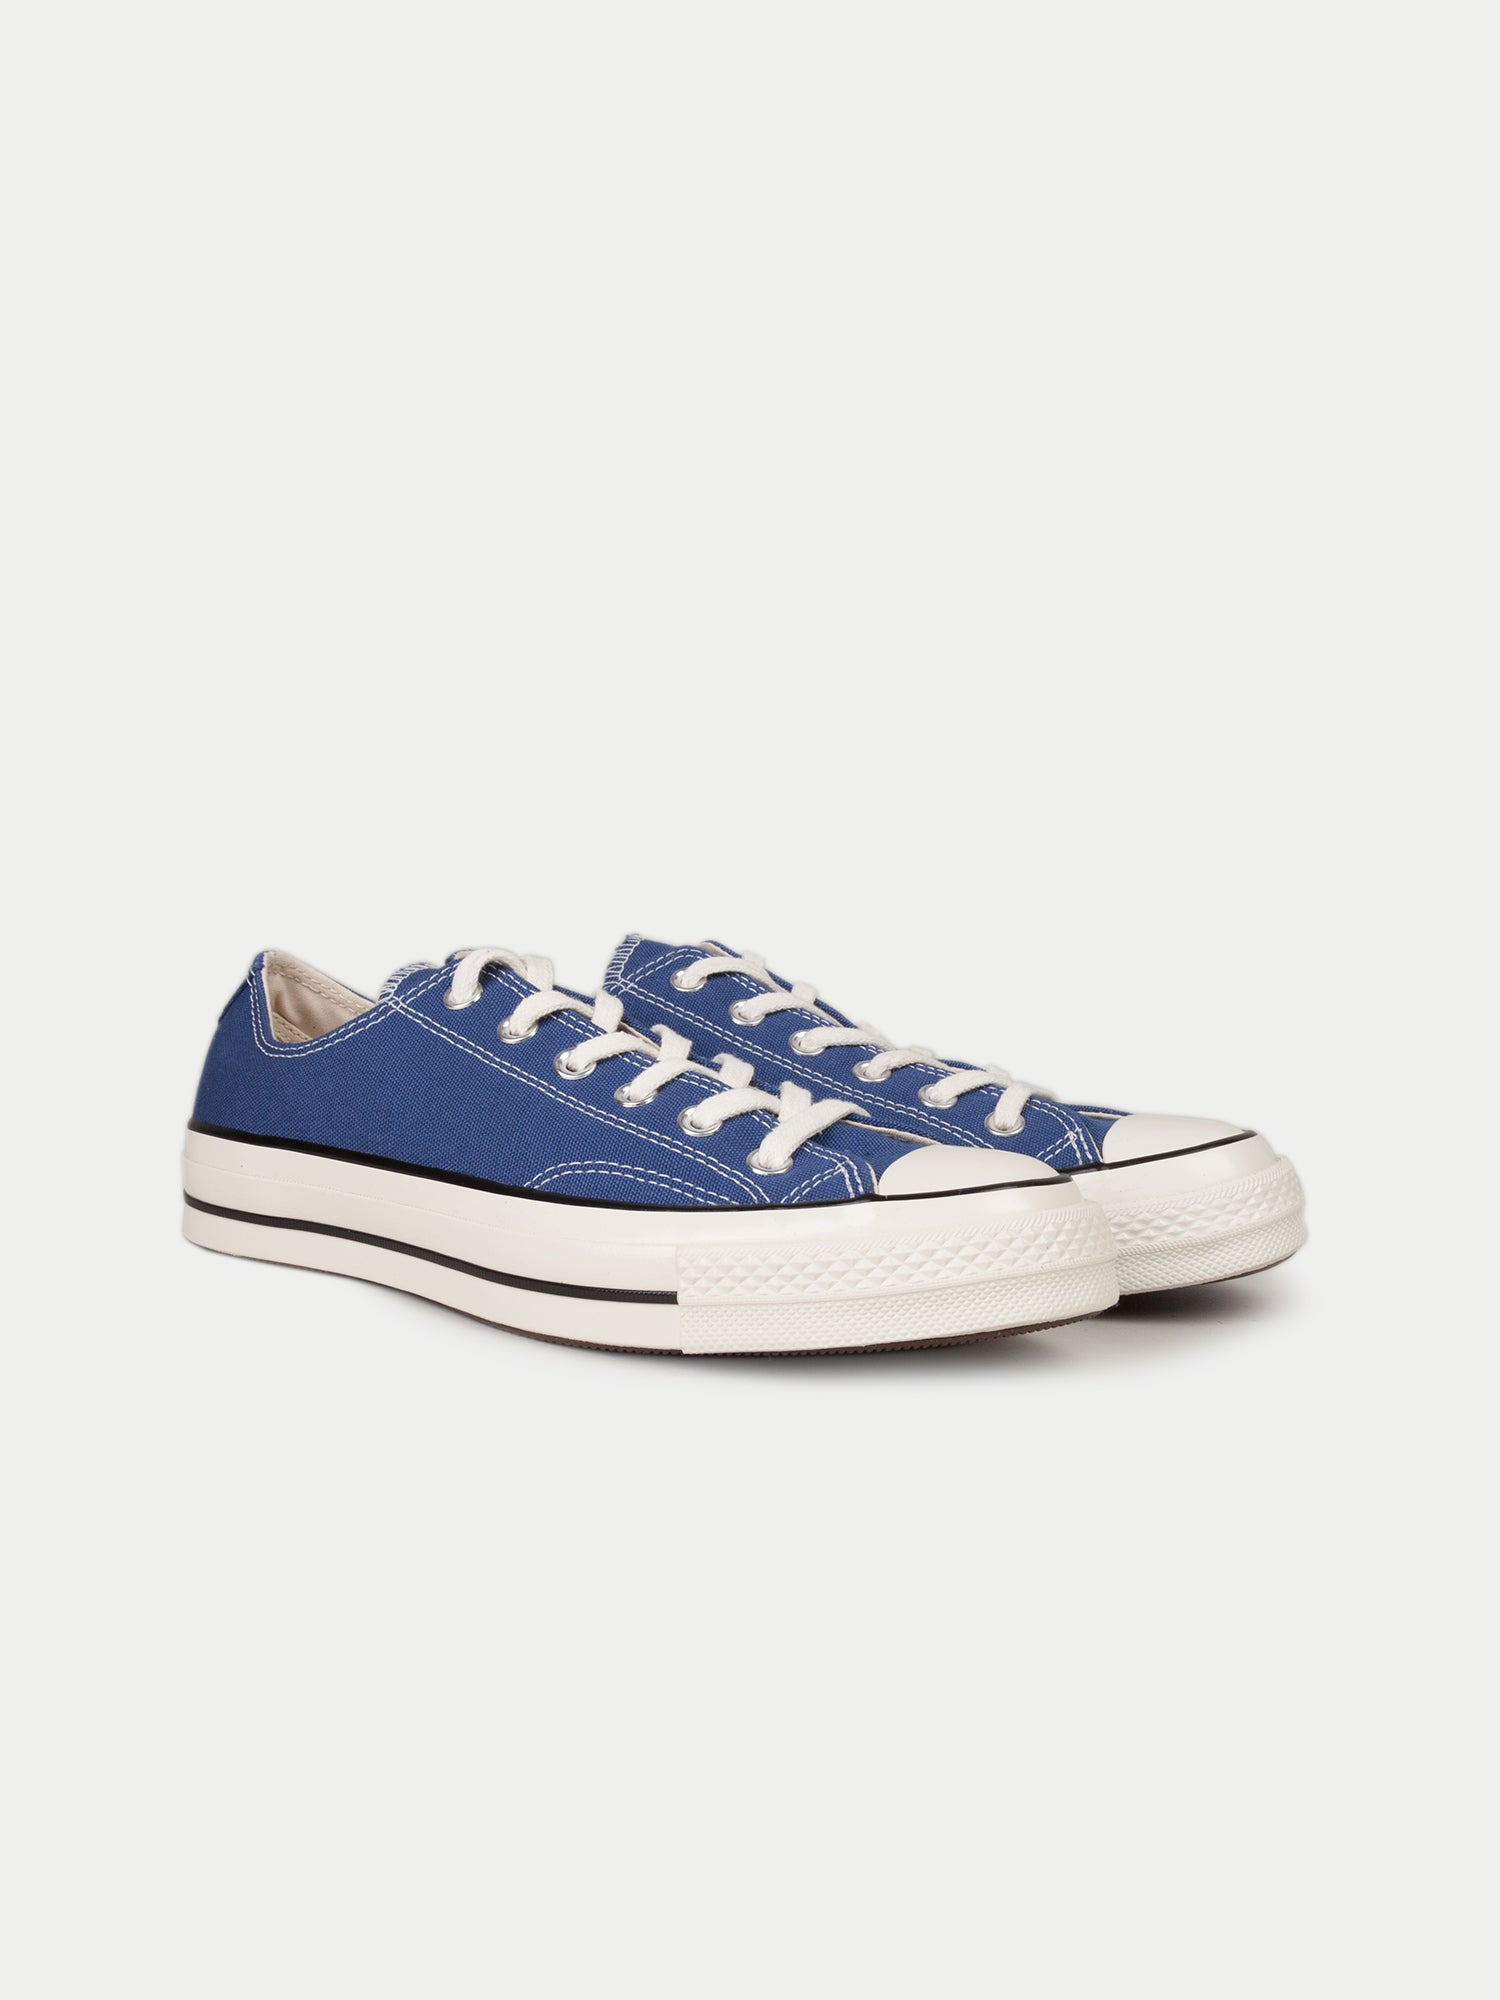 11dee974adb1 Converse-Chuck-Taylor-All-Star-70 -Ox- True-Navy.jpg v 1533815099